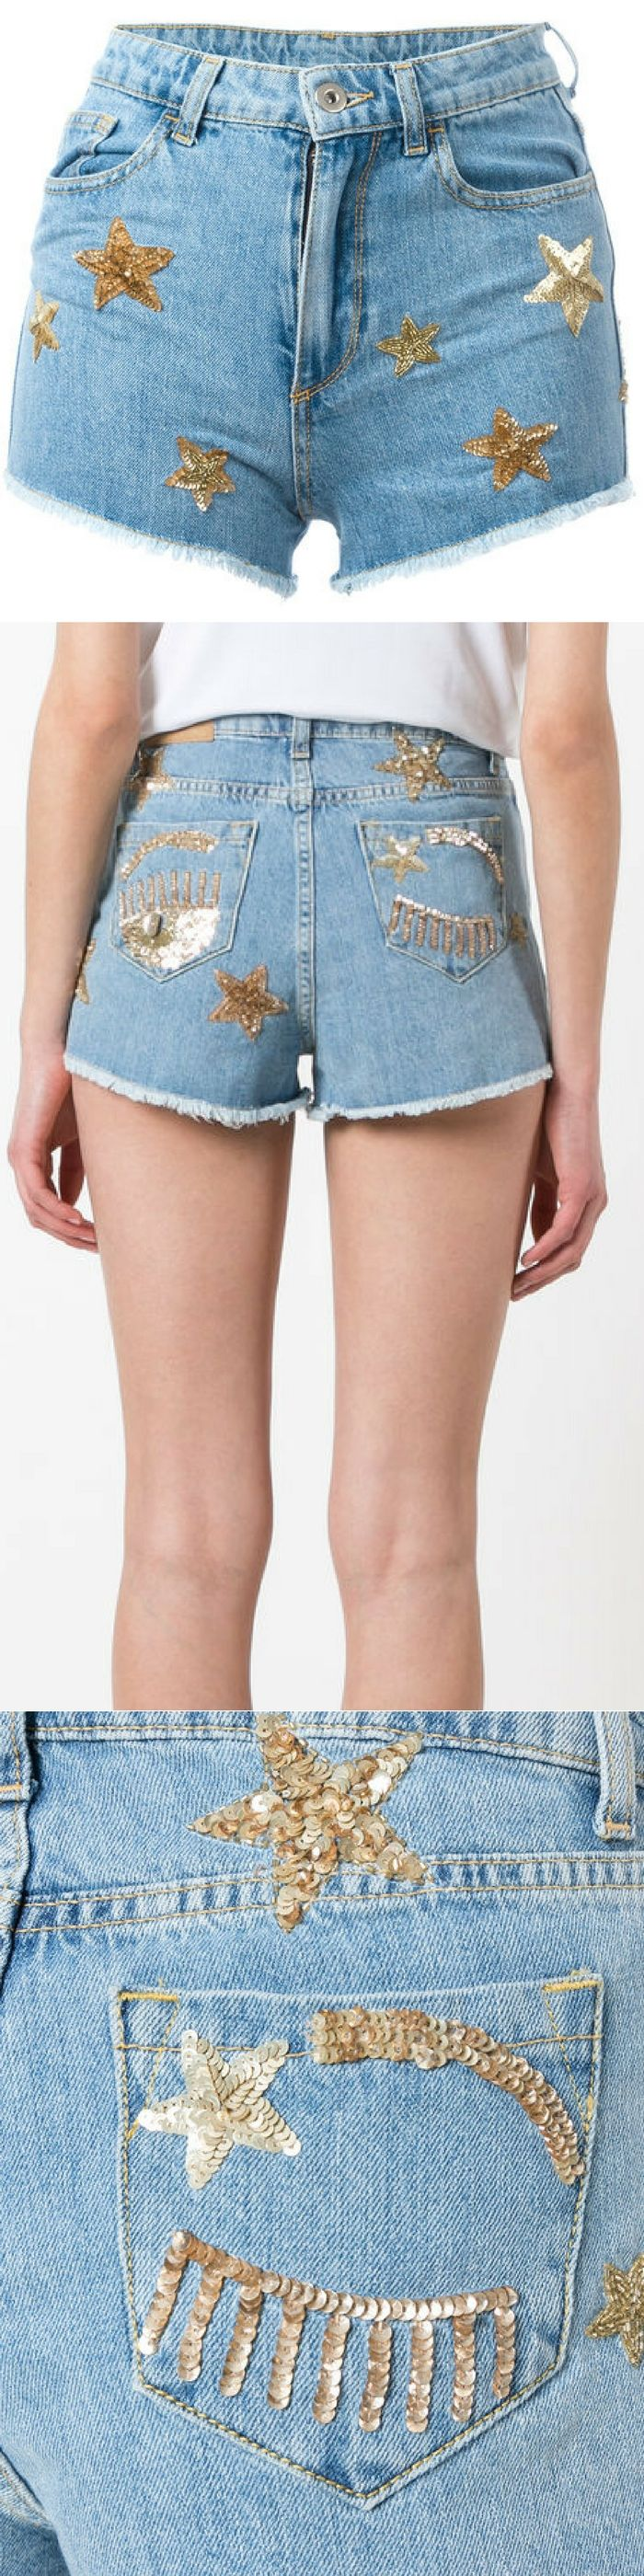 Chiara Ferragni Flirting shorts with gold star (gold sequins)